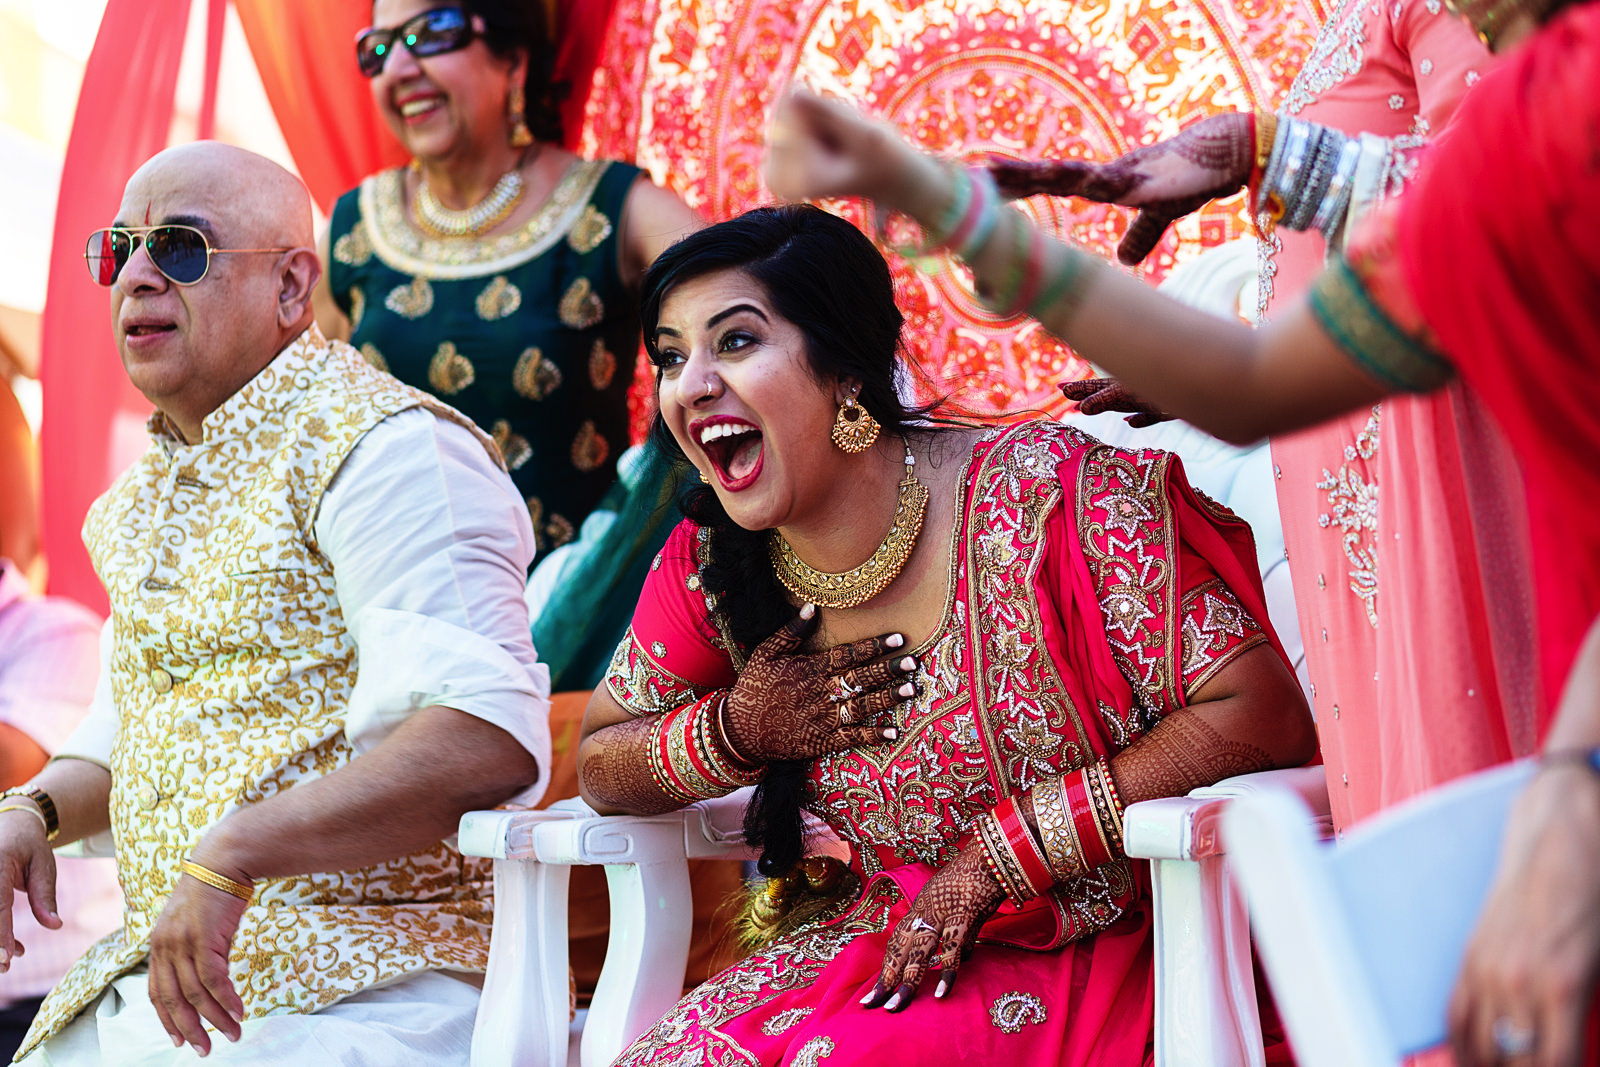 Reaction of bride while seeing groom performing